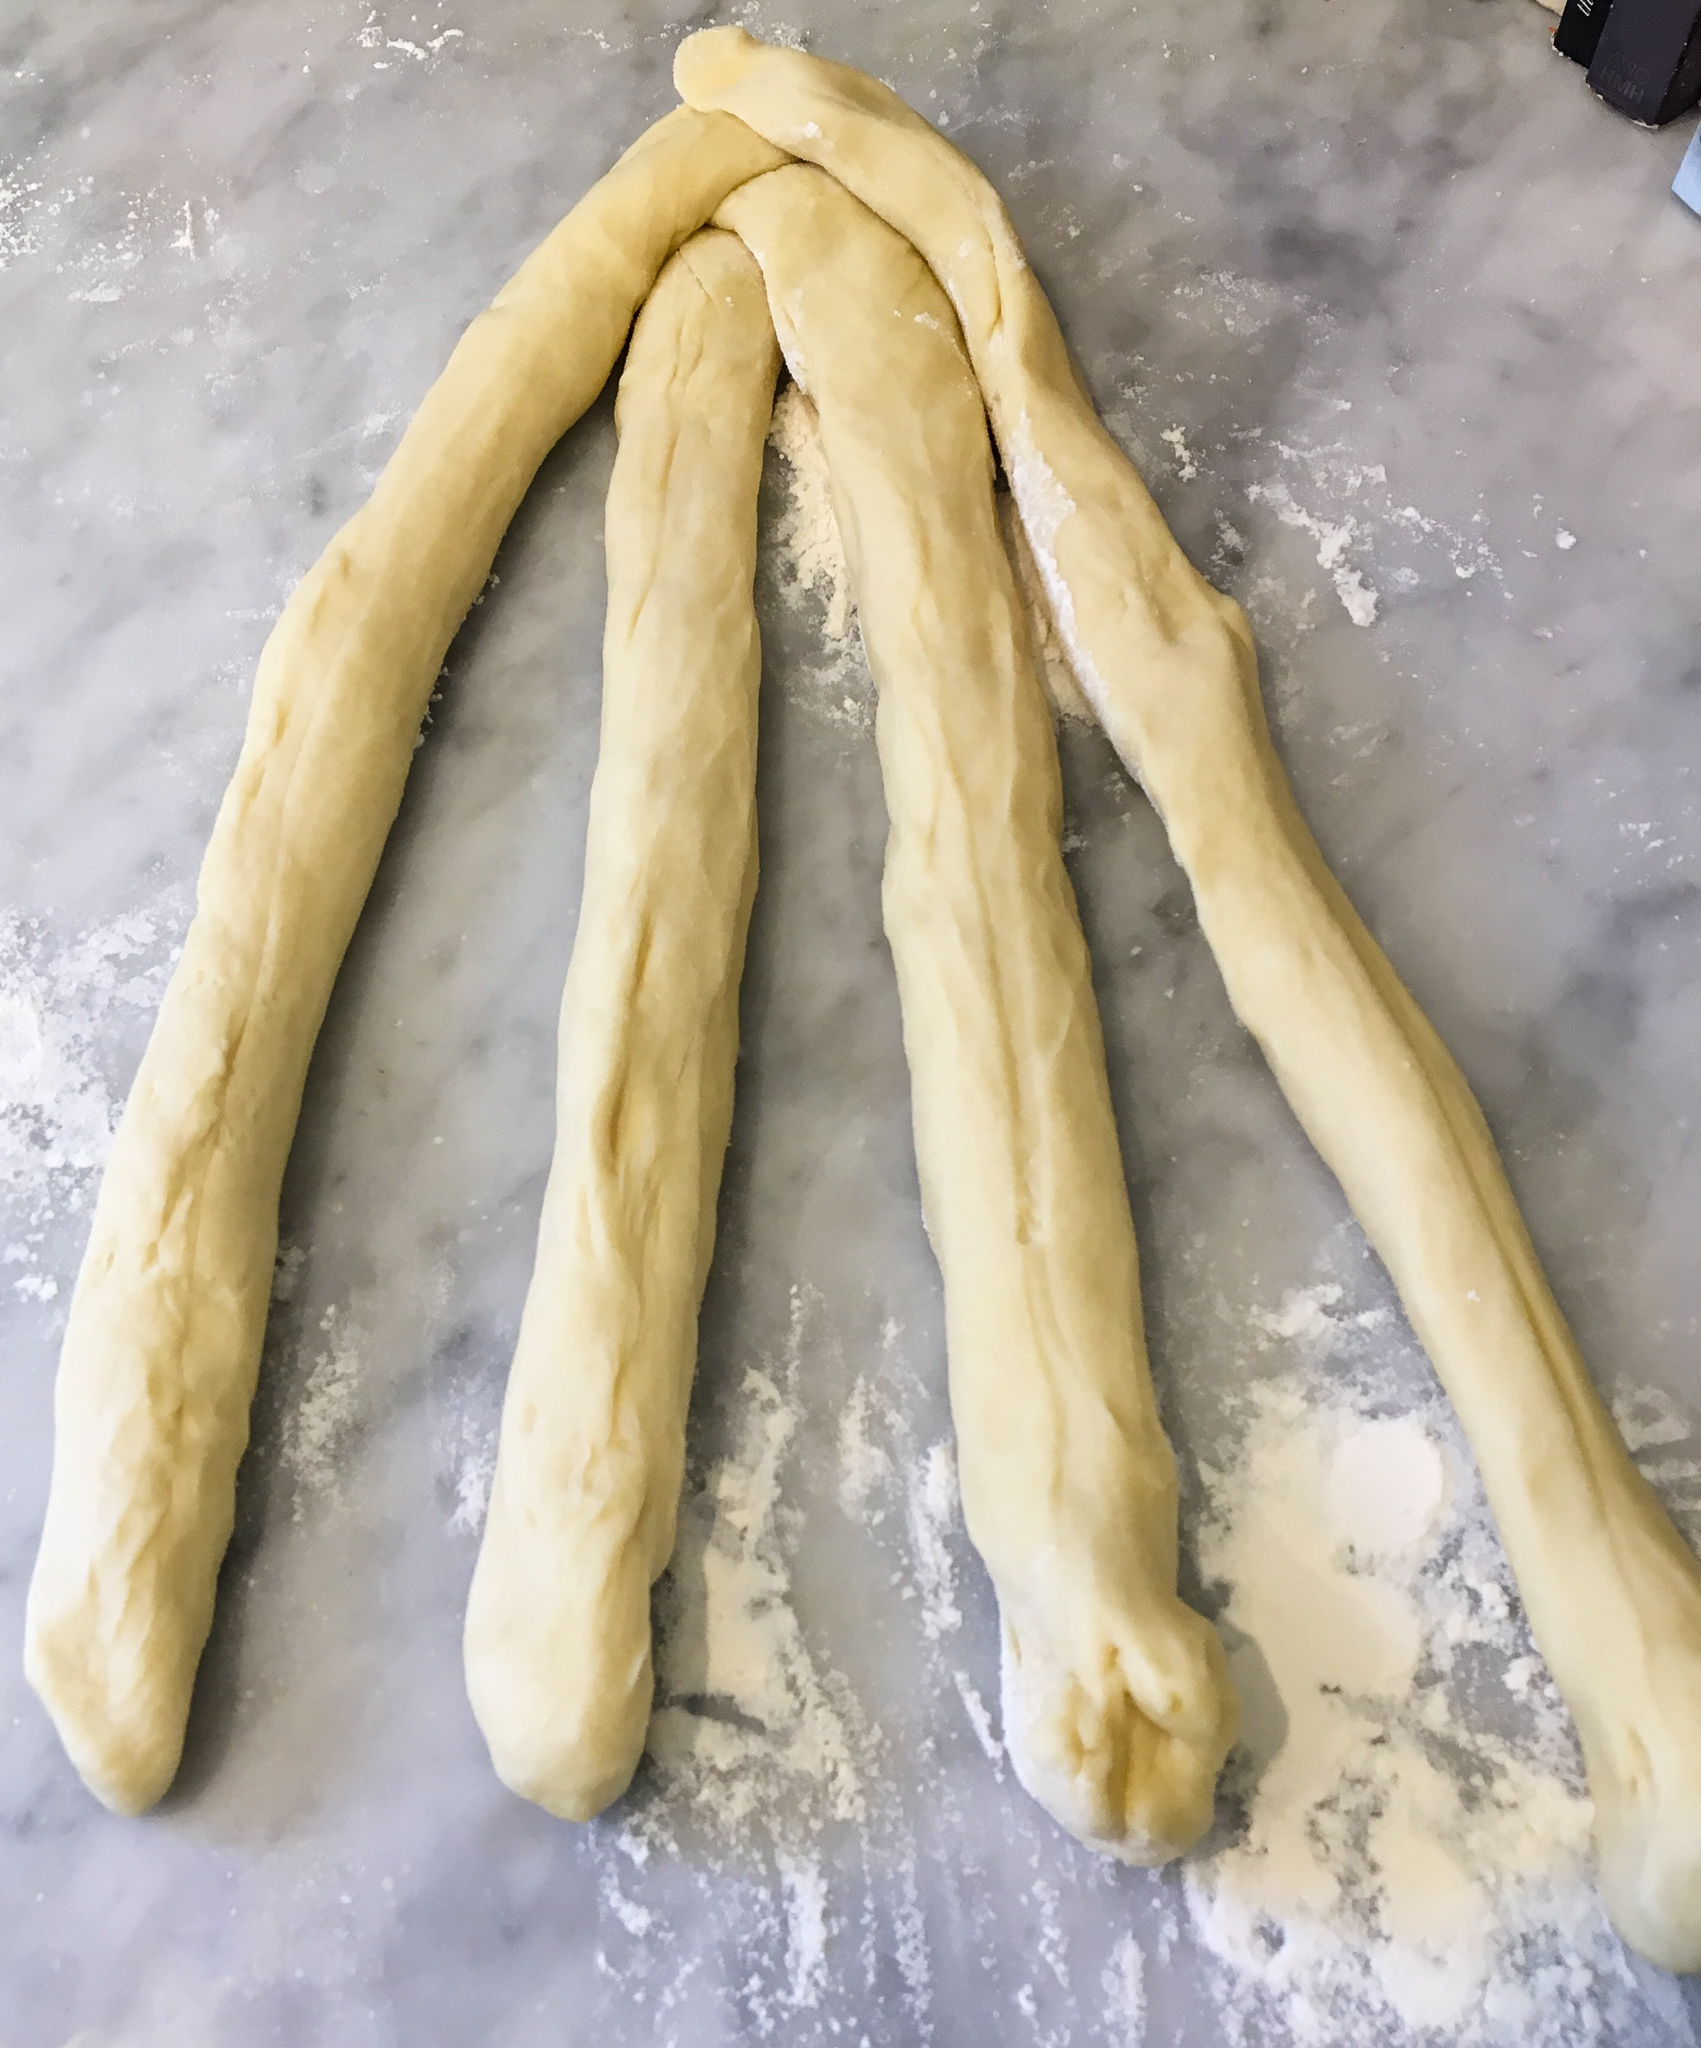 - Separate your dough into 4 equal pieces and begin forming